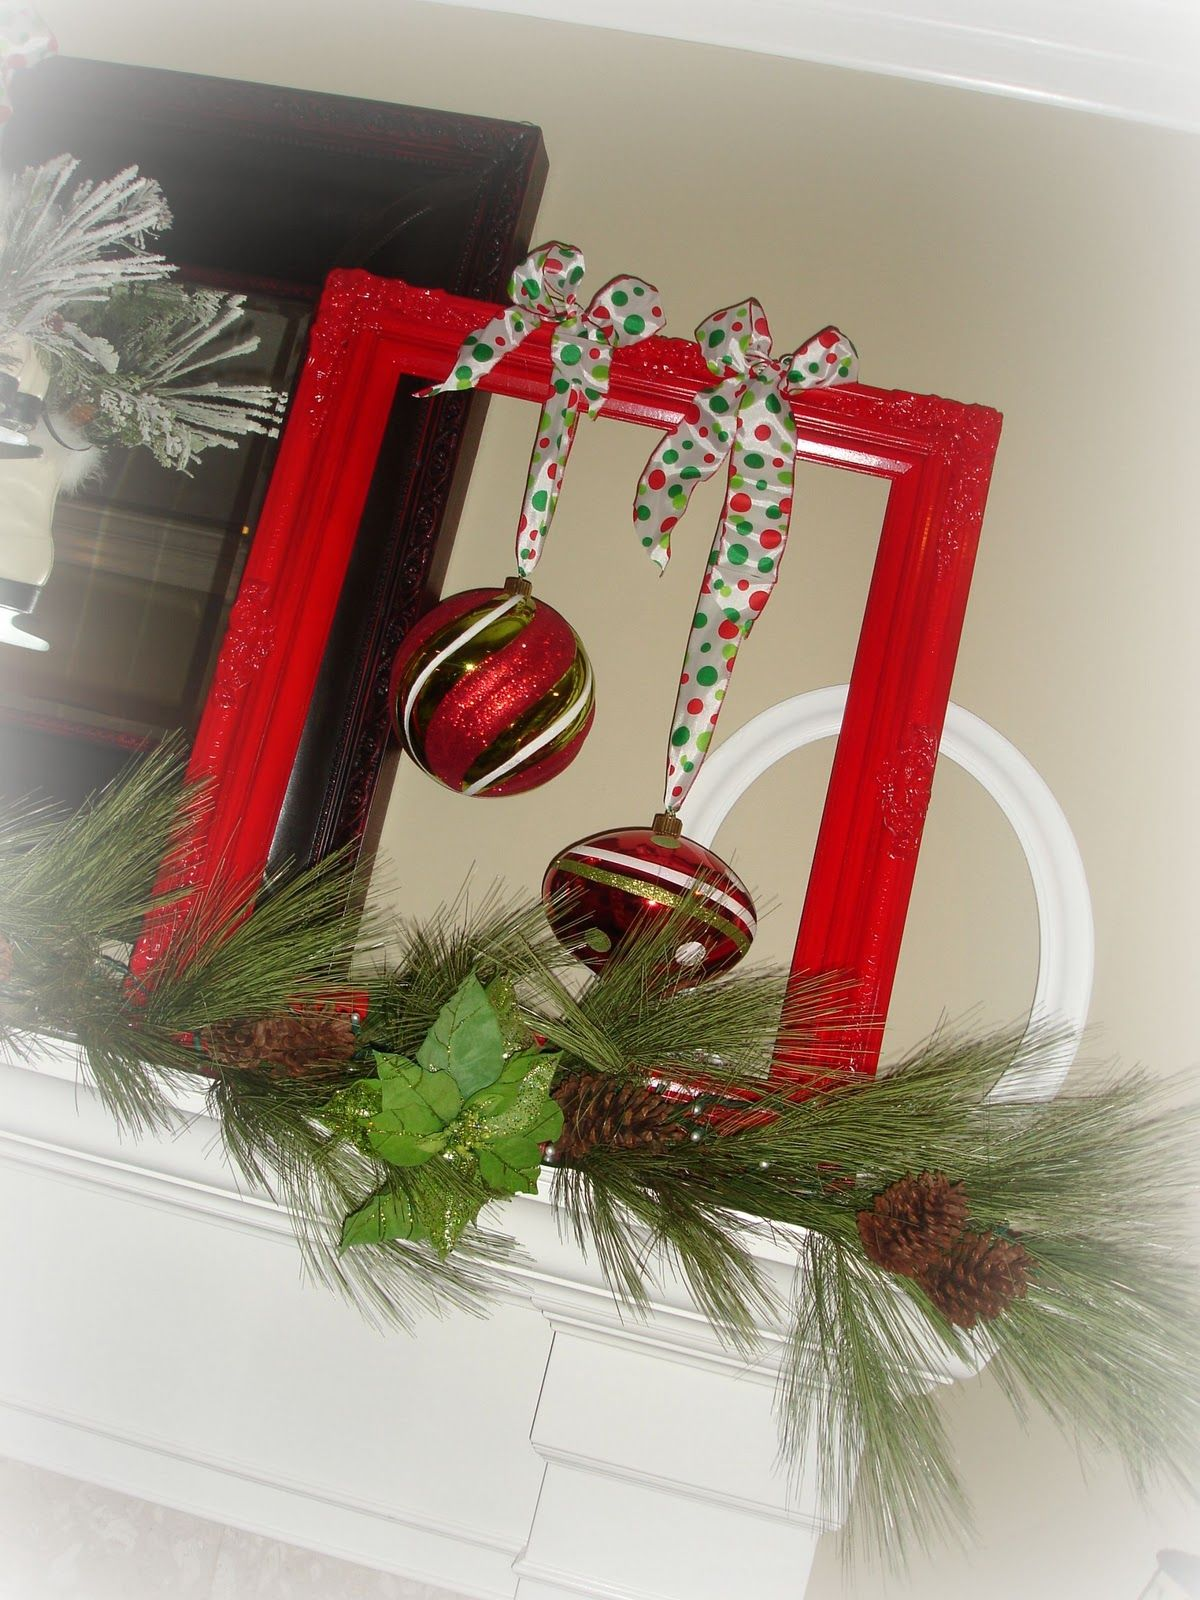 Pain a dollar store frame and hang ornament inside!!! Cute cheap ...